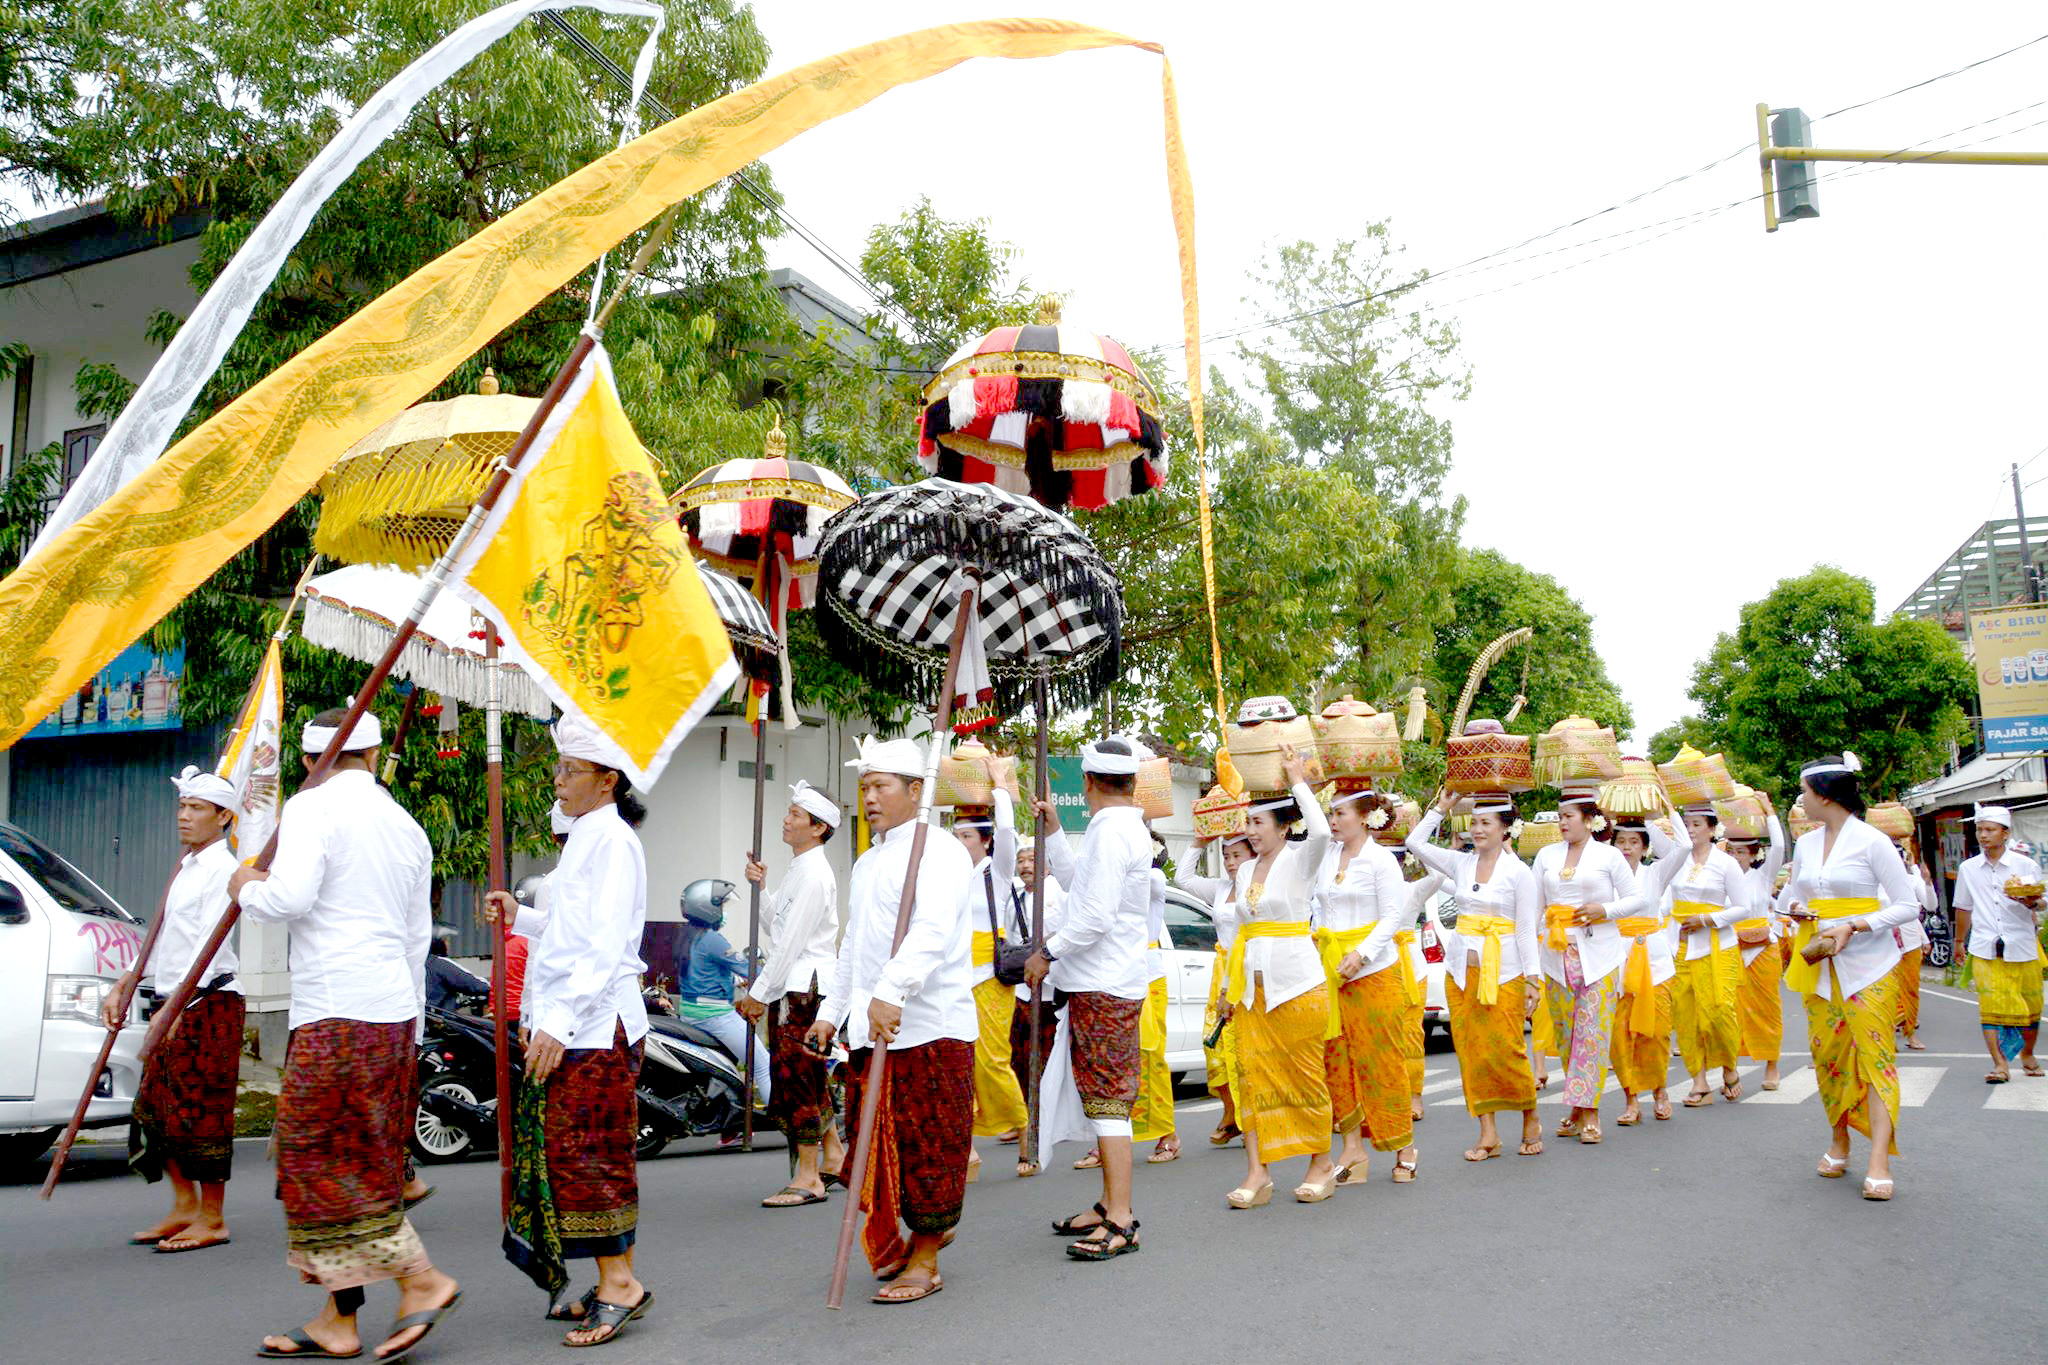 The magical textiles of Bali, support Bali to continue its textile production in Bali traditionally